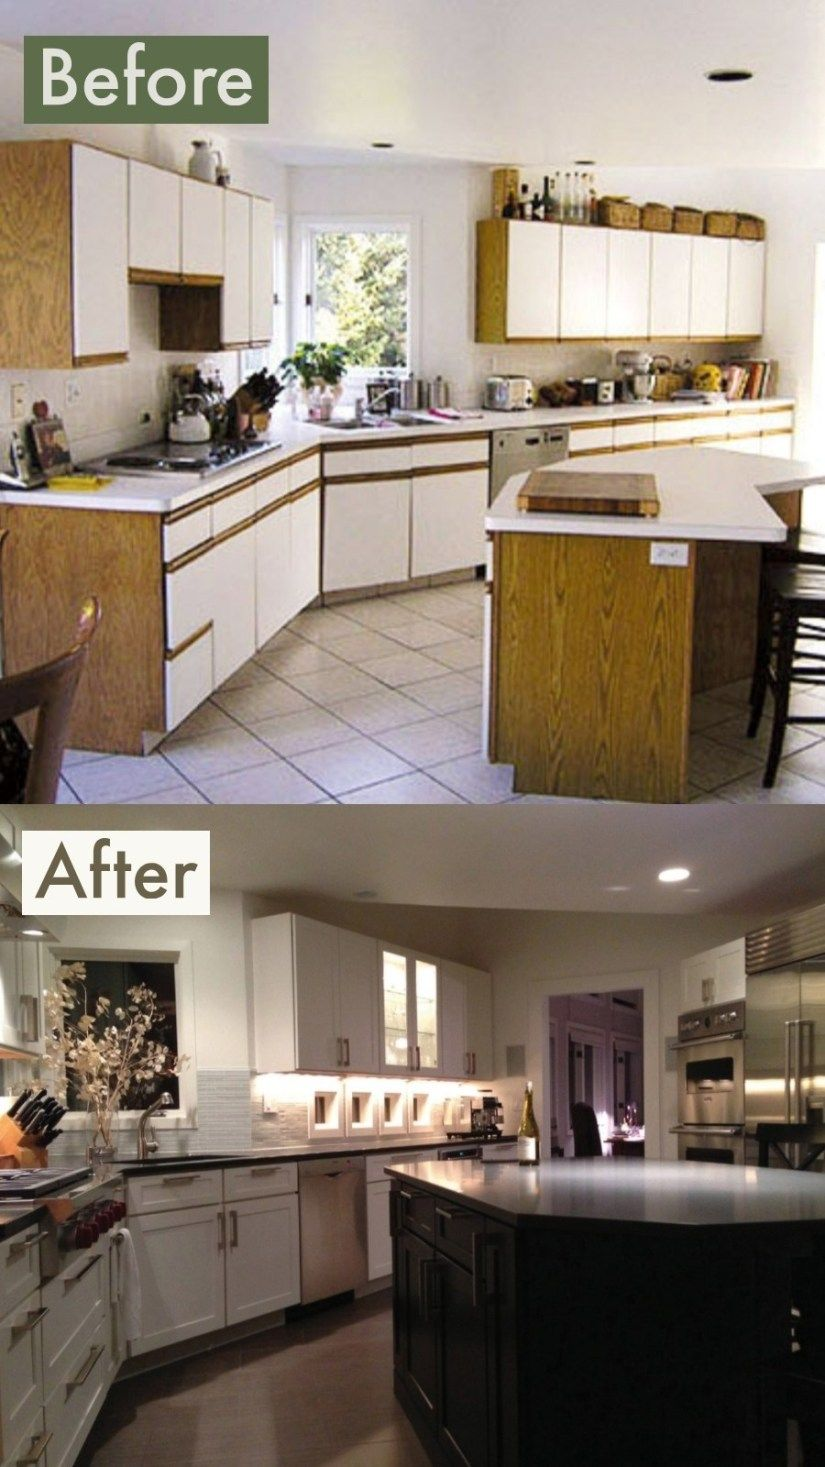 17 Galley Kitchen Remodel Before And After Ideas 2019 Trends